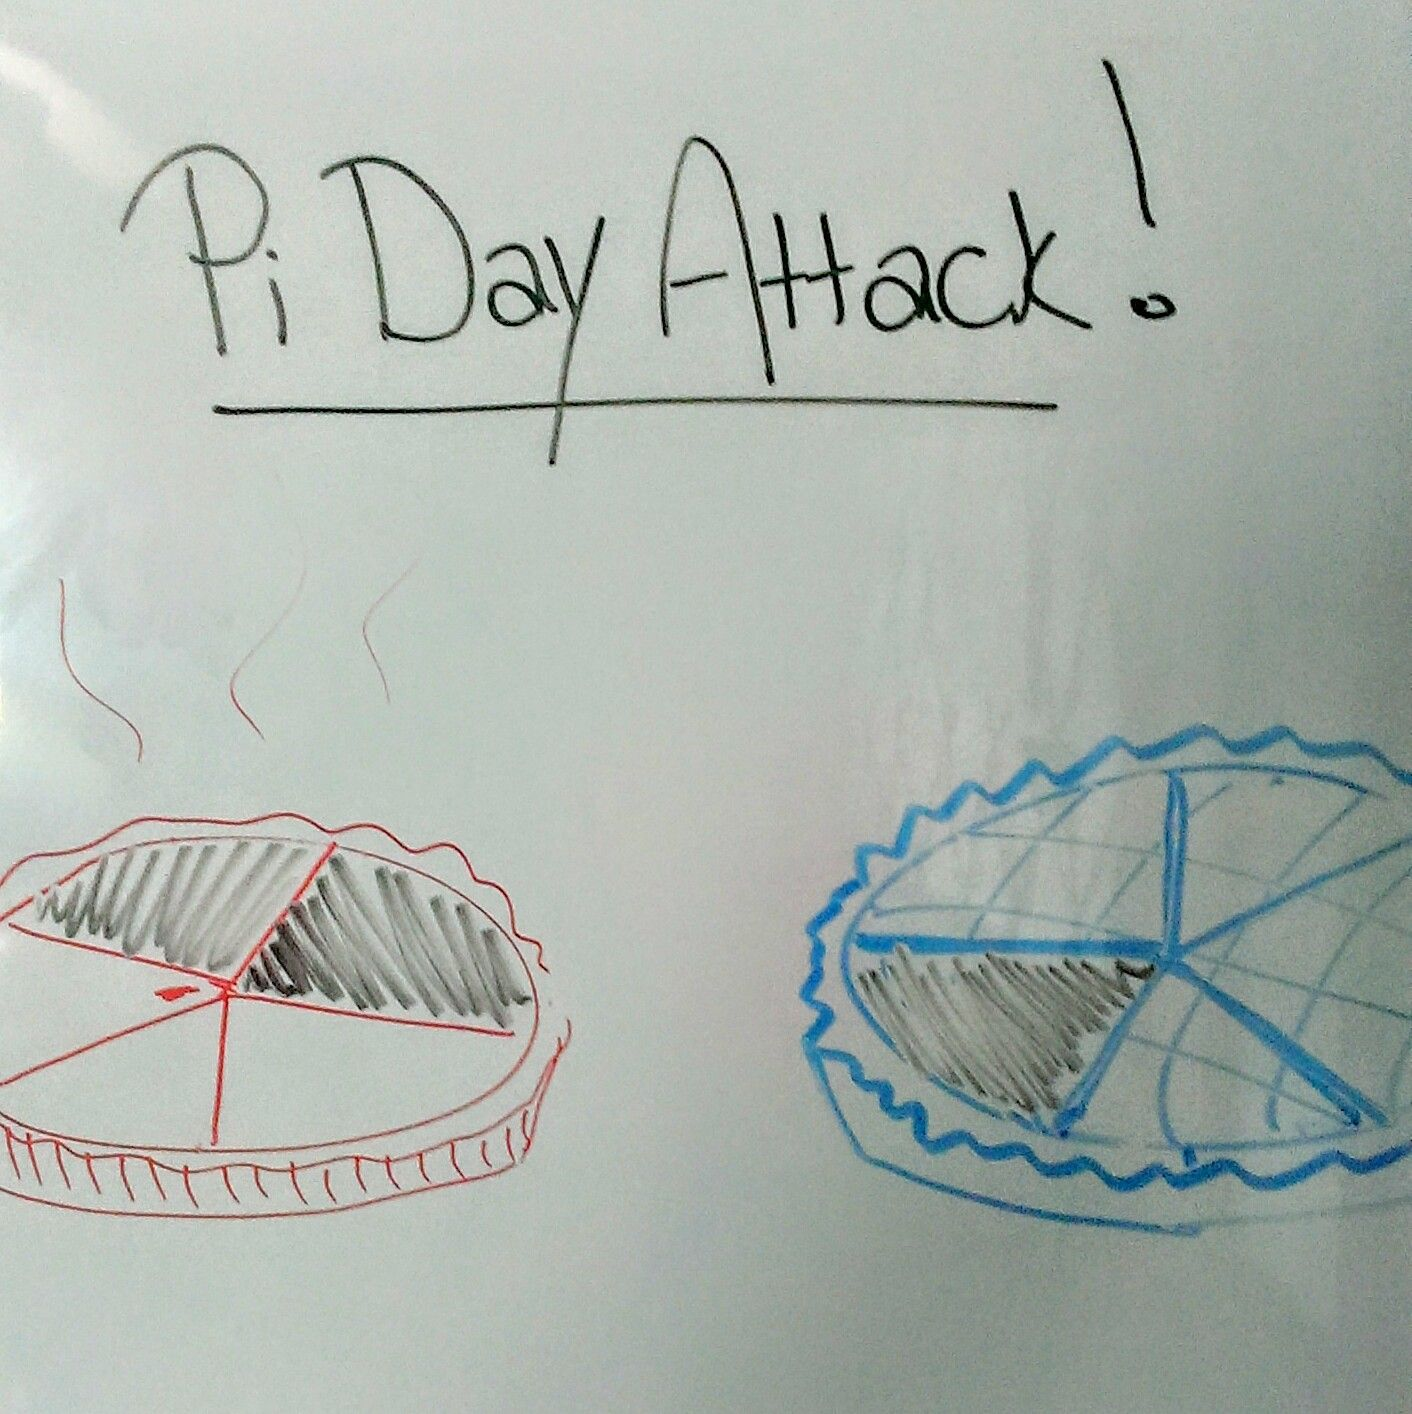 FREE Pi Day activities you havent seen before - perfect for Algebra I or any class! {Blog Post}